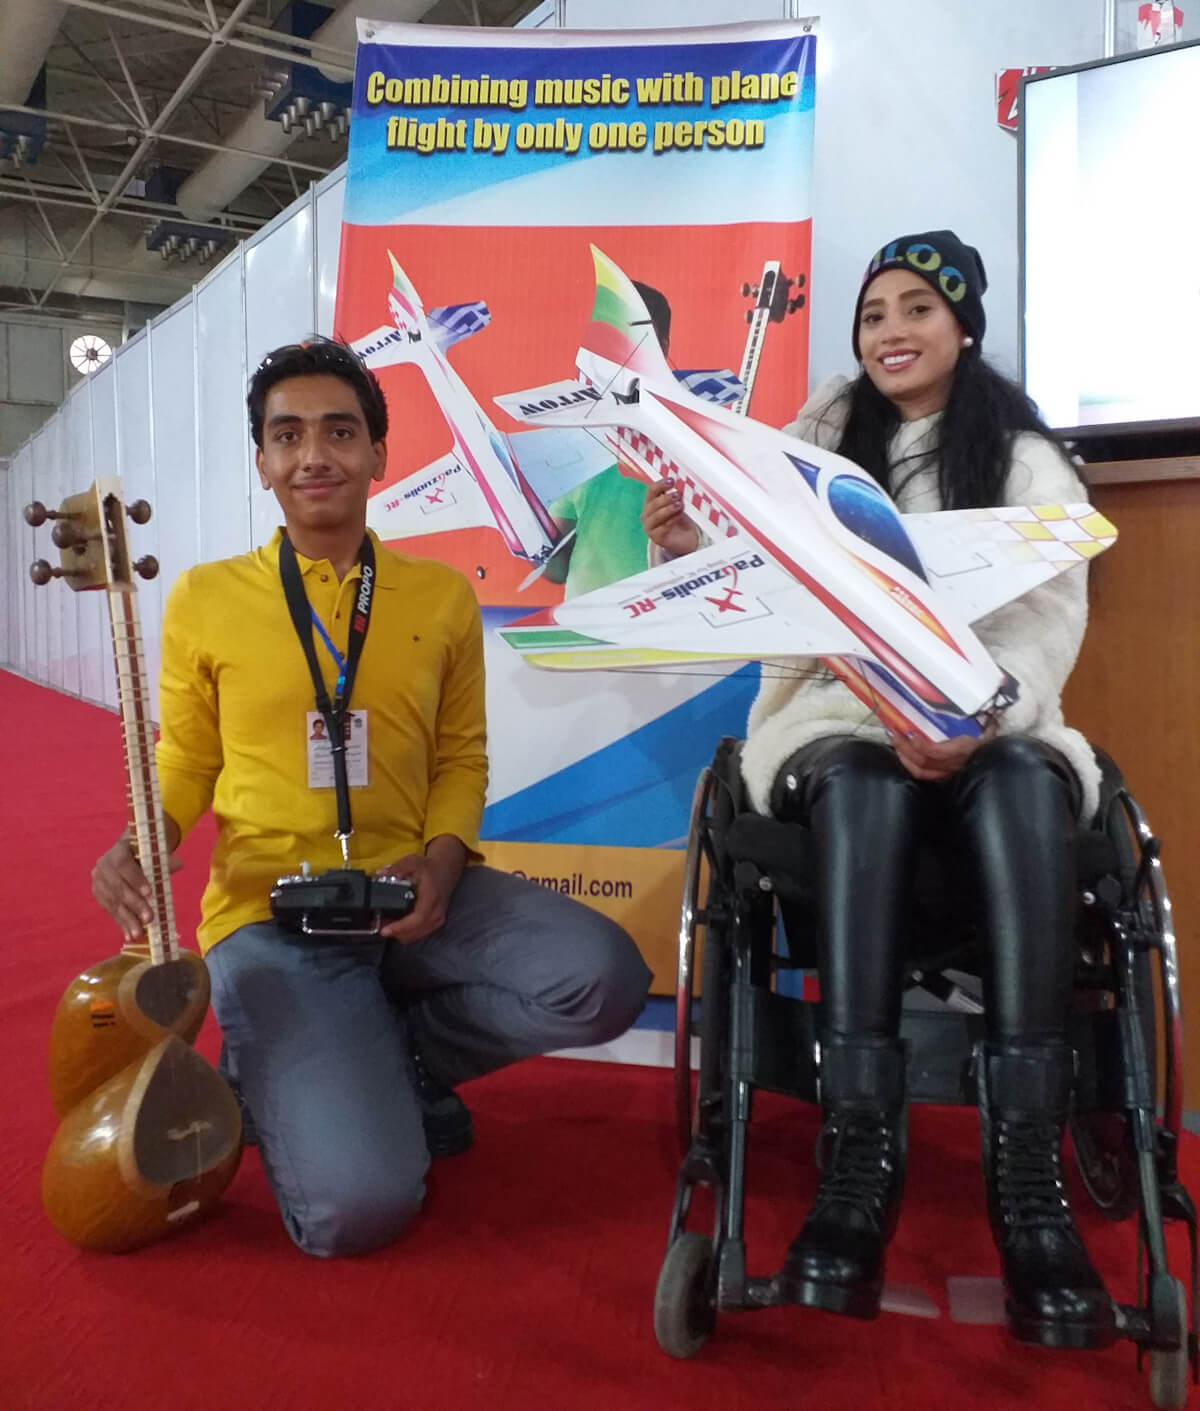 Ali Asgari shows Ms. Niloufar the joy of flying model aircraft. Ali hopes they can perform a formation flight together in the future. His dream is to introduce model airplane flying to people with disabilities.